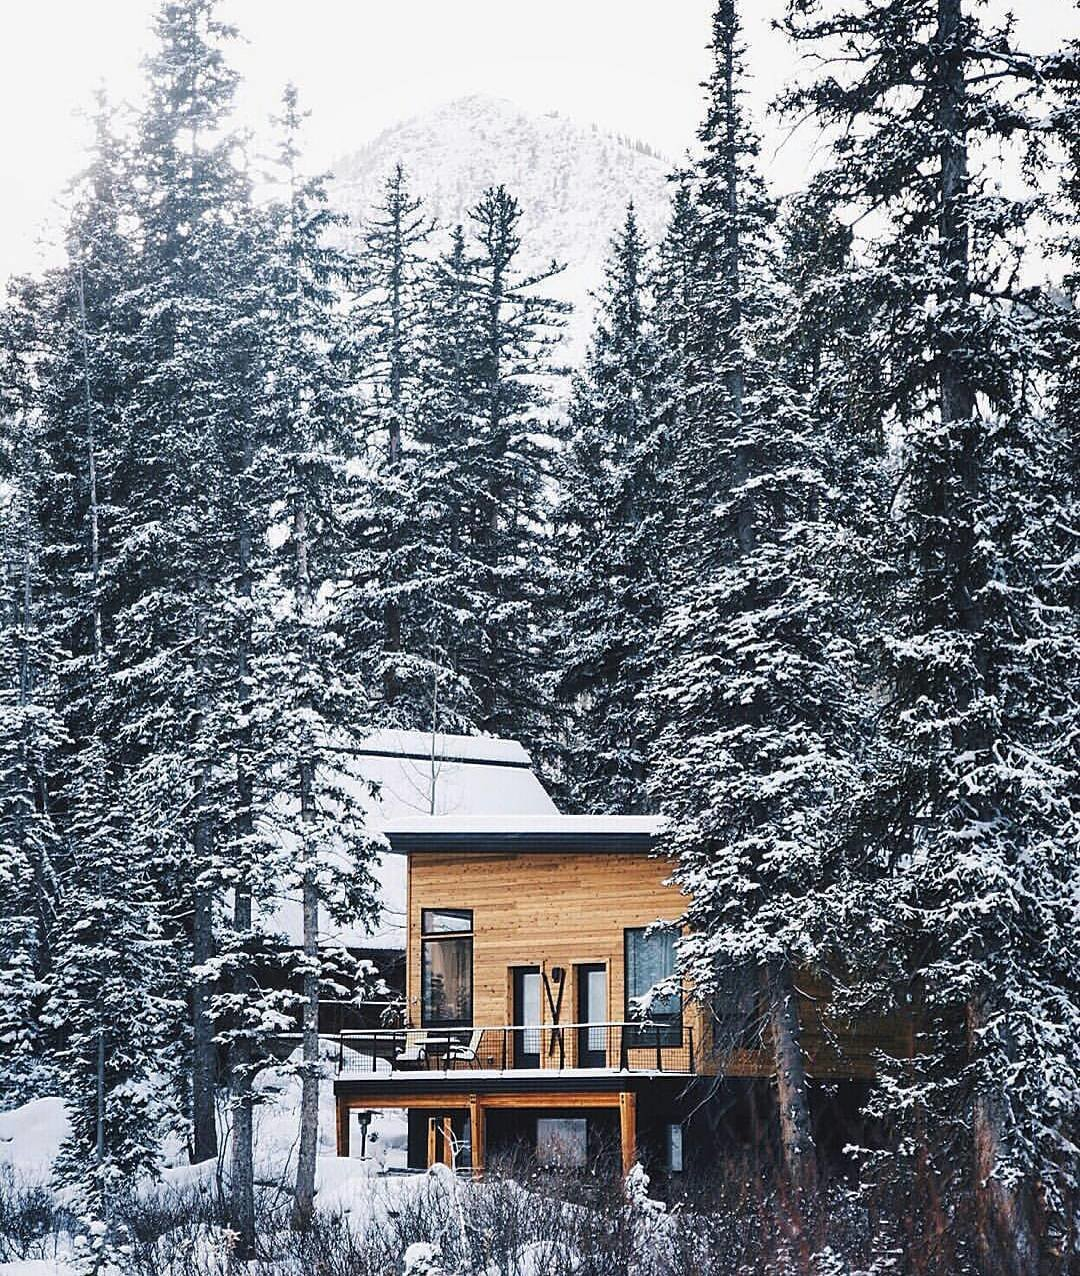 Photo 11 of 14 in 12 Cabin Escapes to Inspire Your Next Weekend Getaway